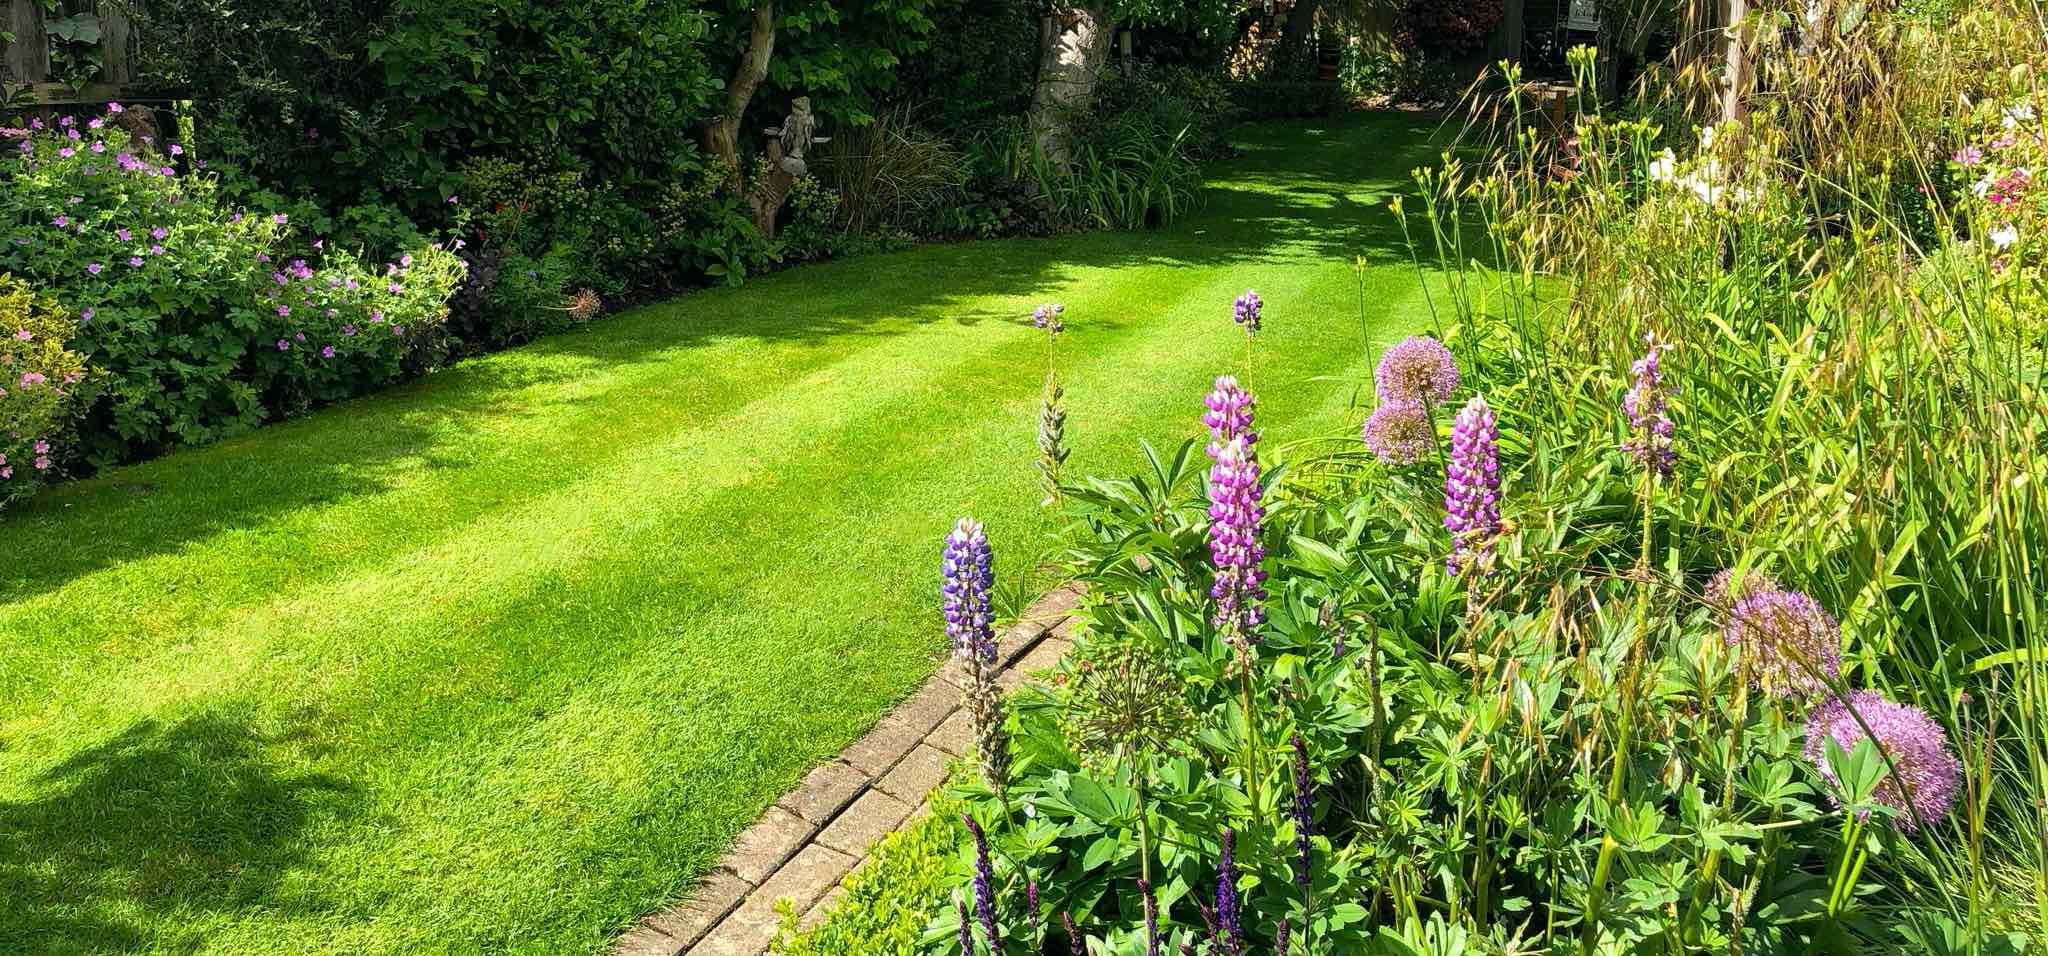 Green lawn treated with fertiliser in garden with lots of flowers